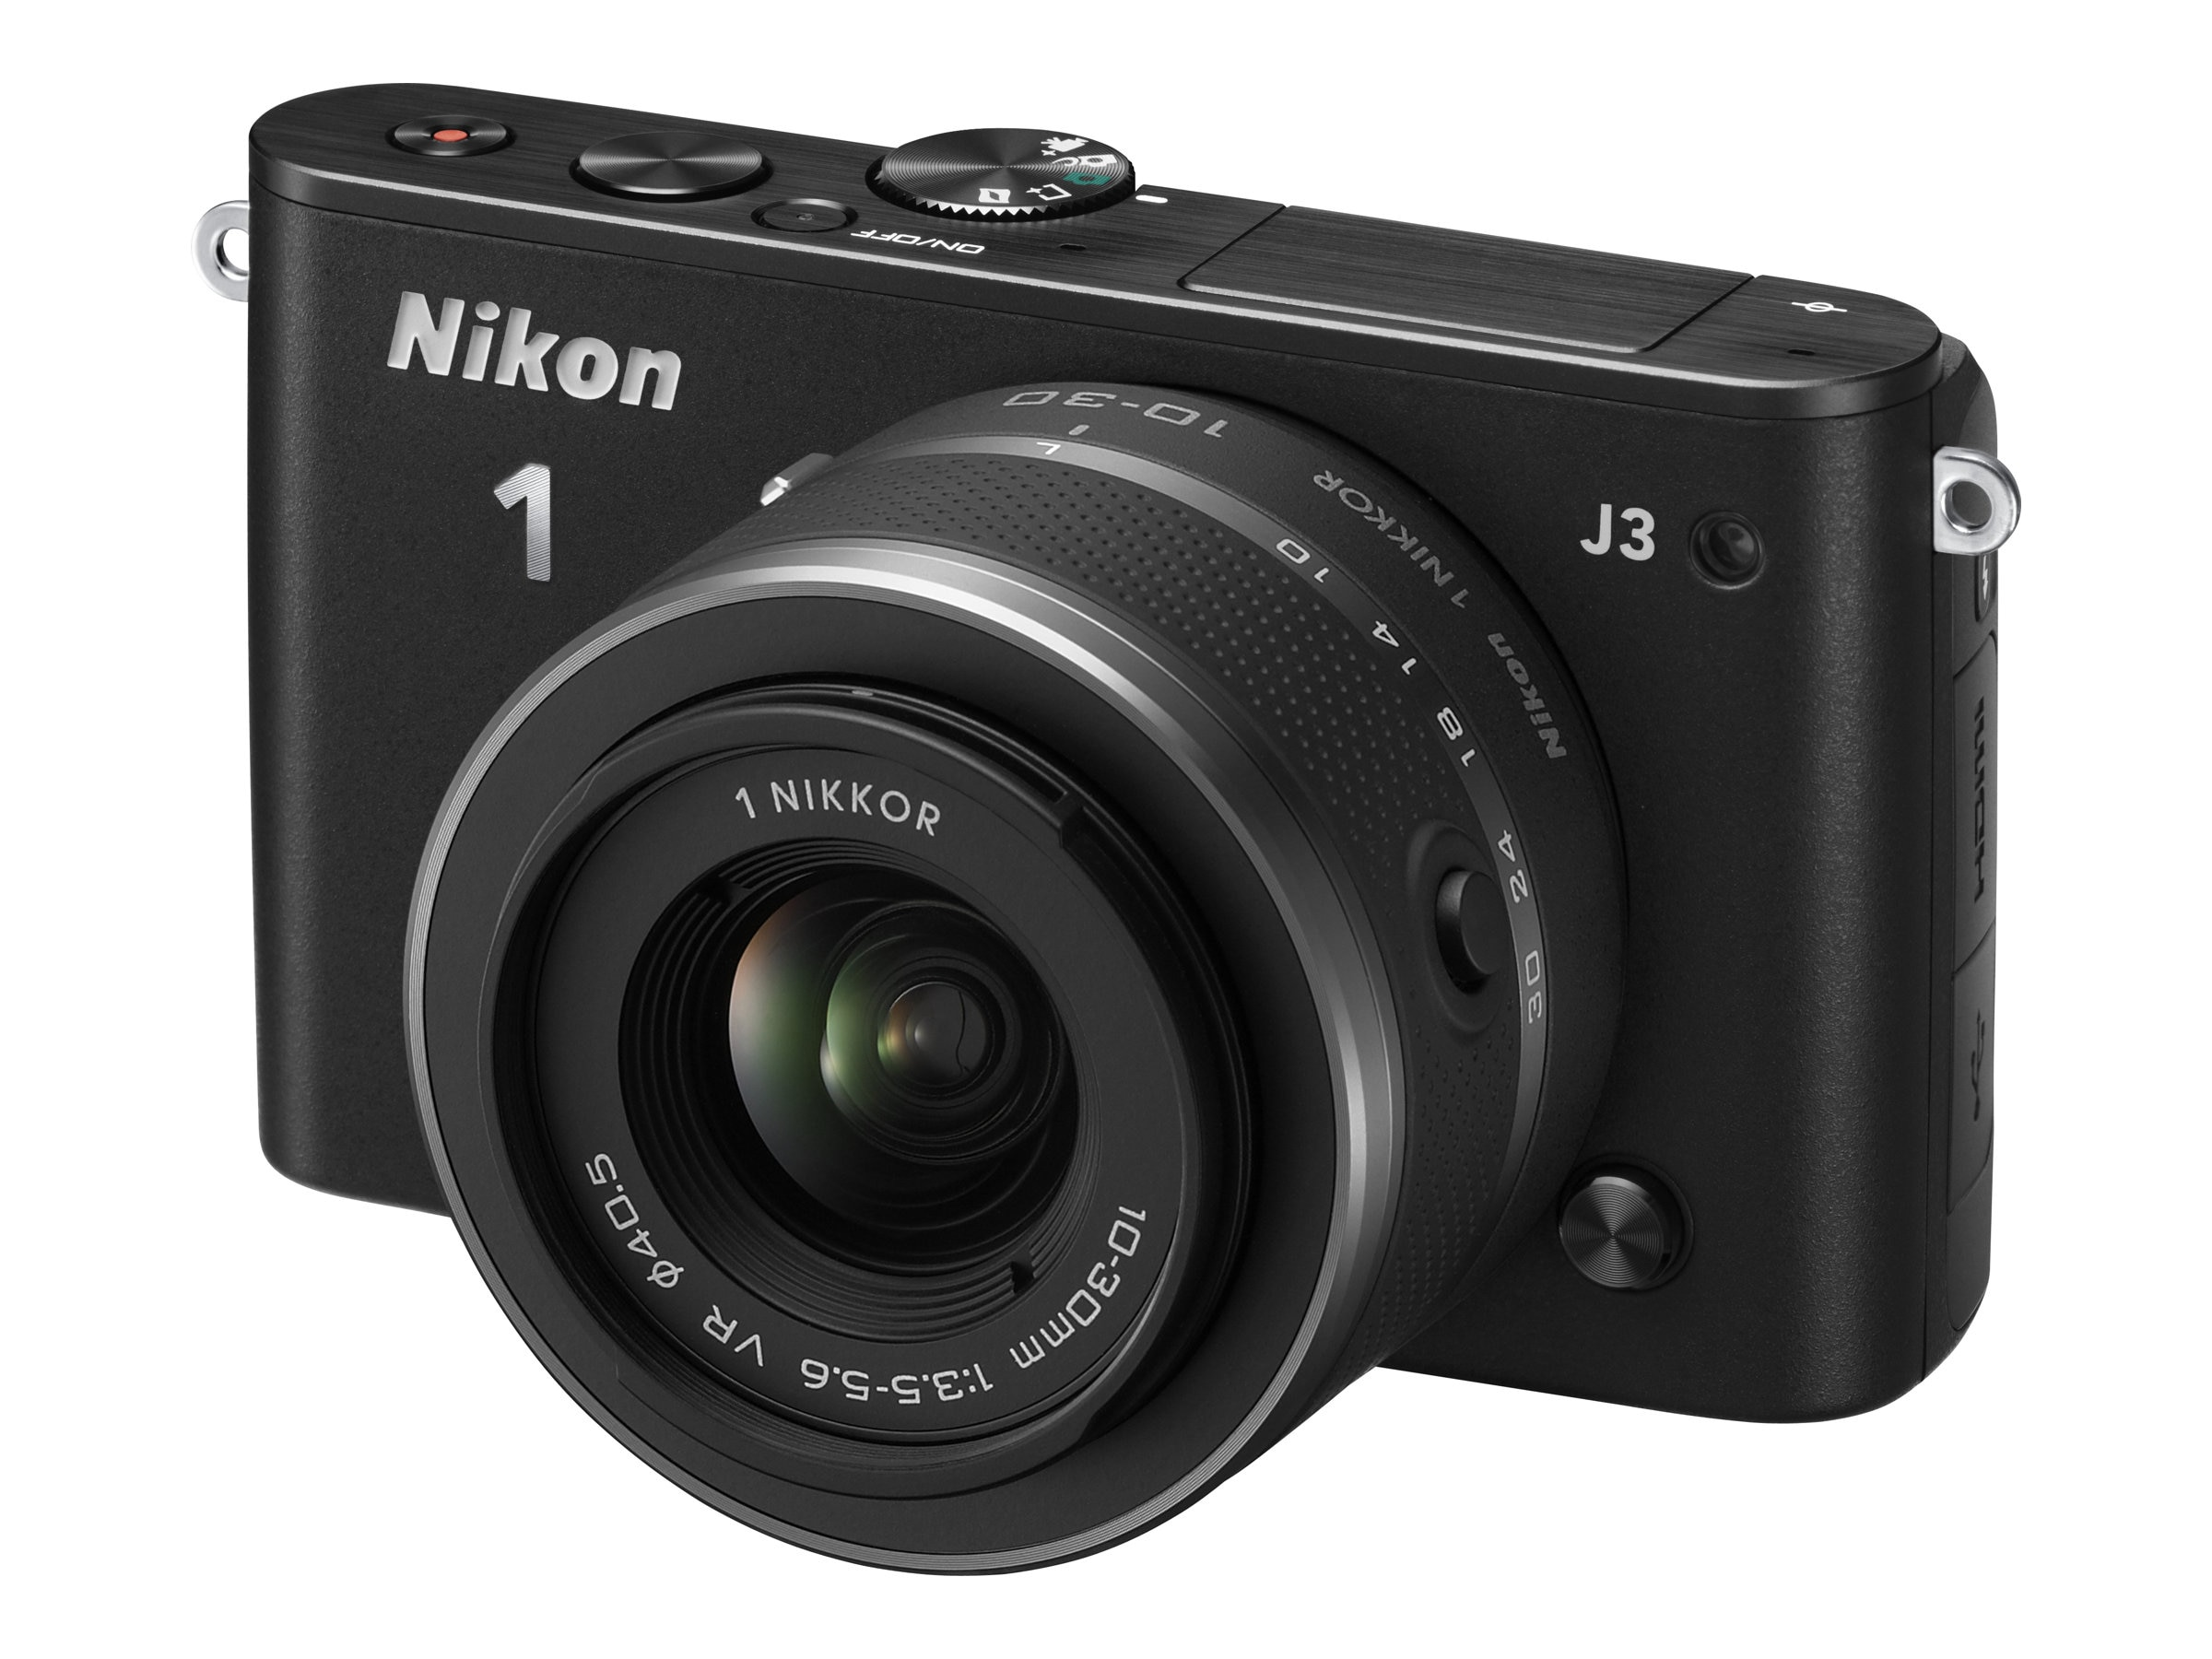 Nikon J3 Interchangable Lens Digital Camera, 14.2MP, Black with 10-100mm Lens, 27657, 15256519, Cameras - Digital - SLR